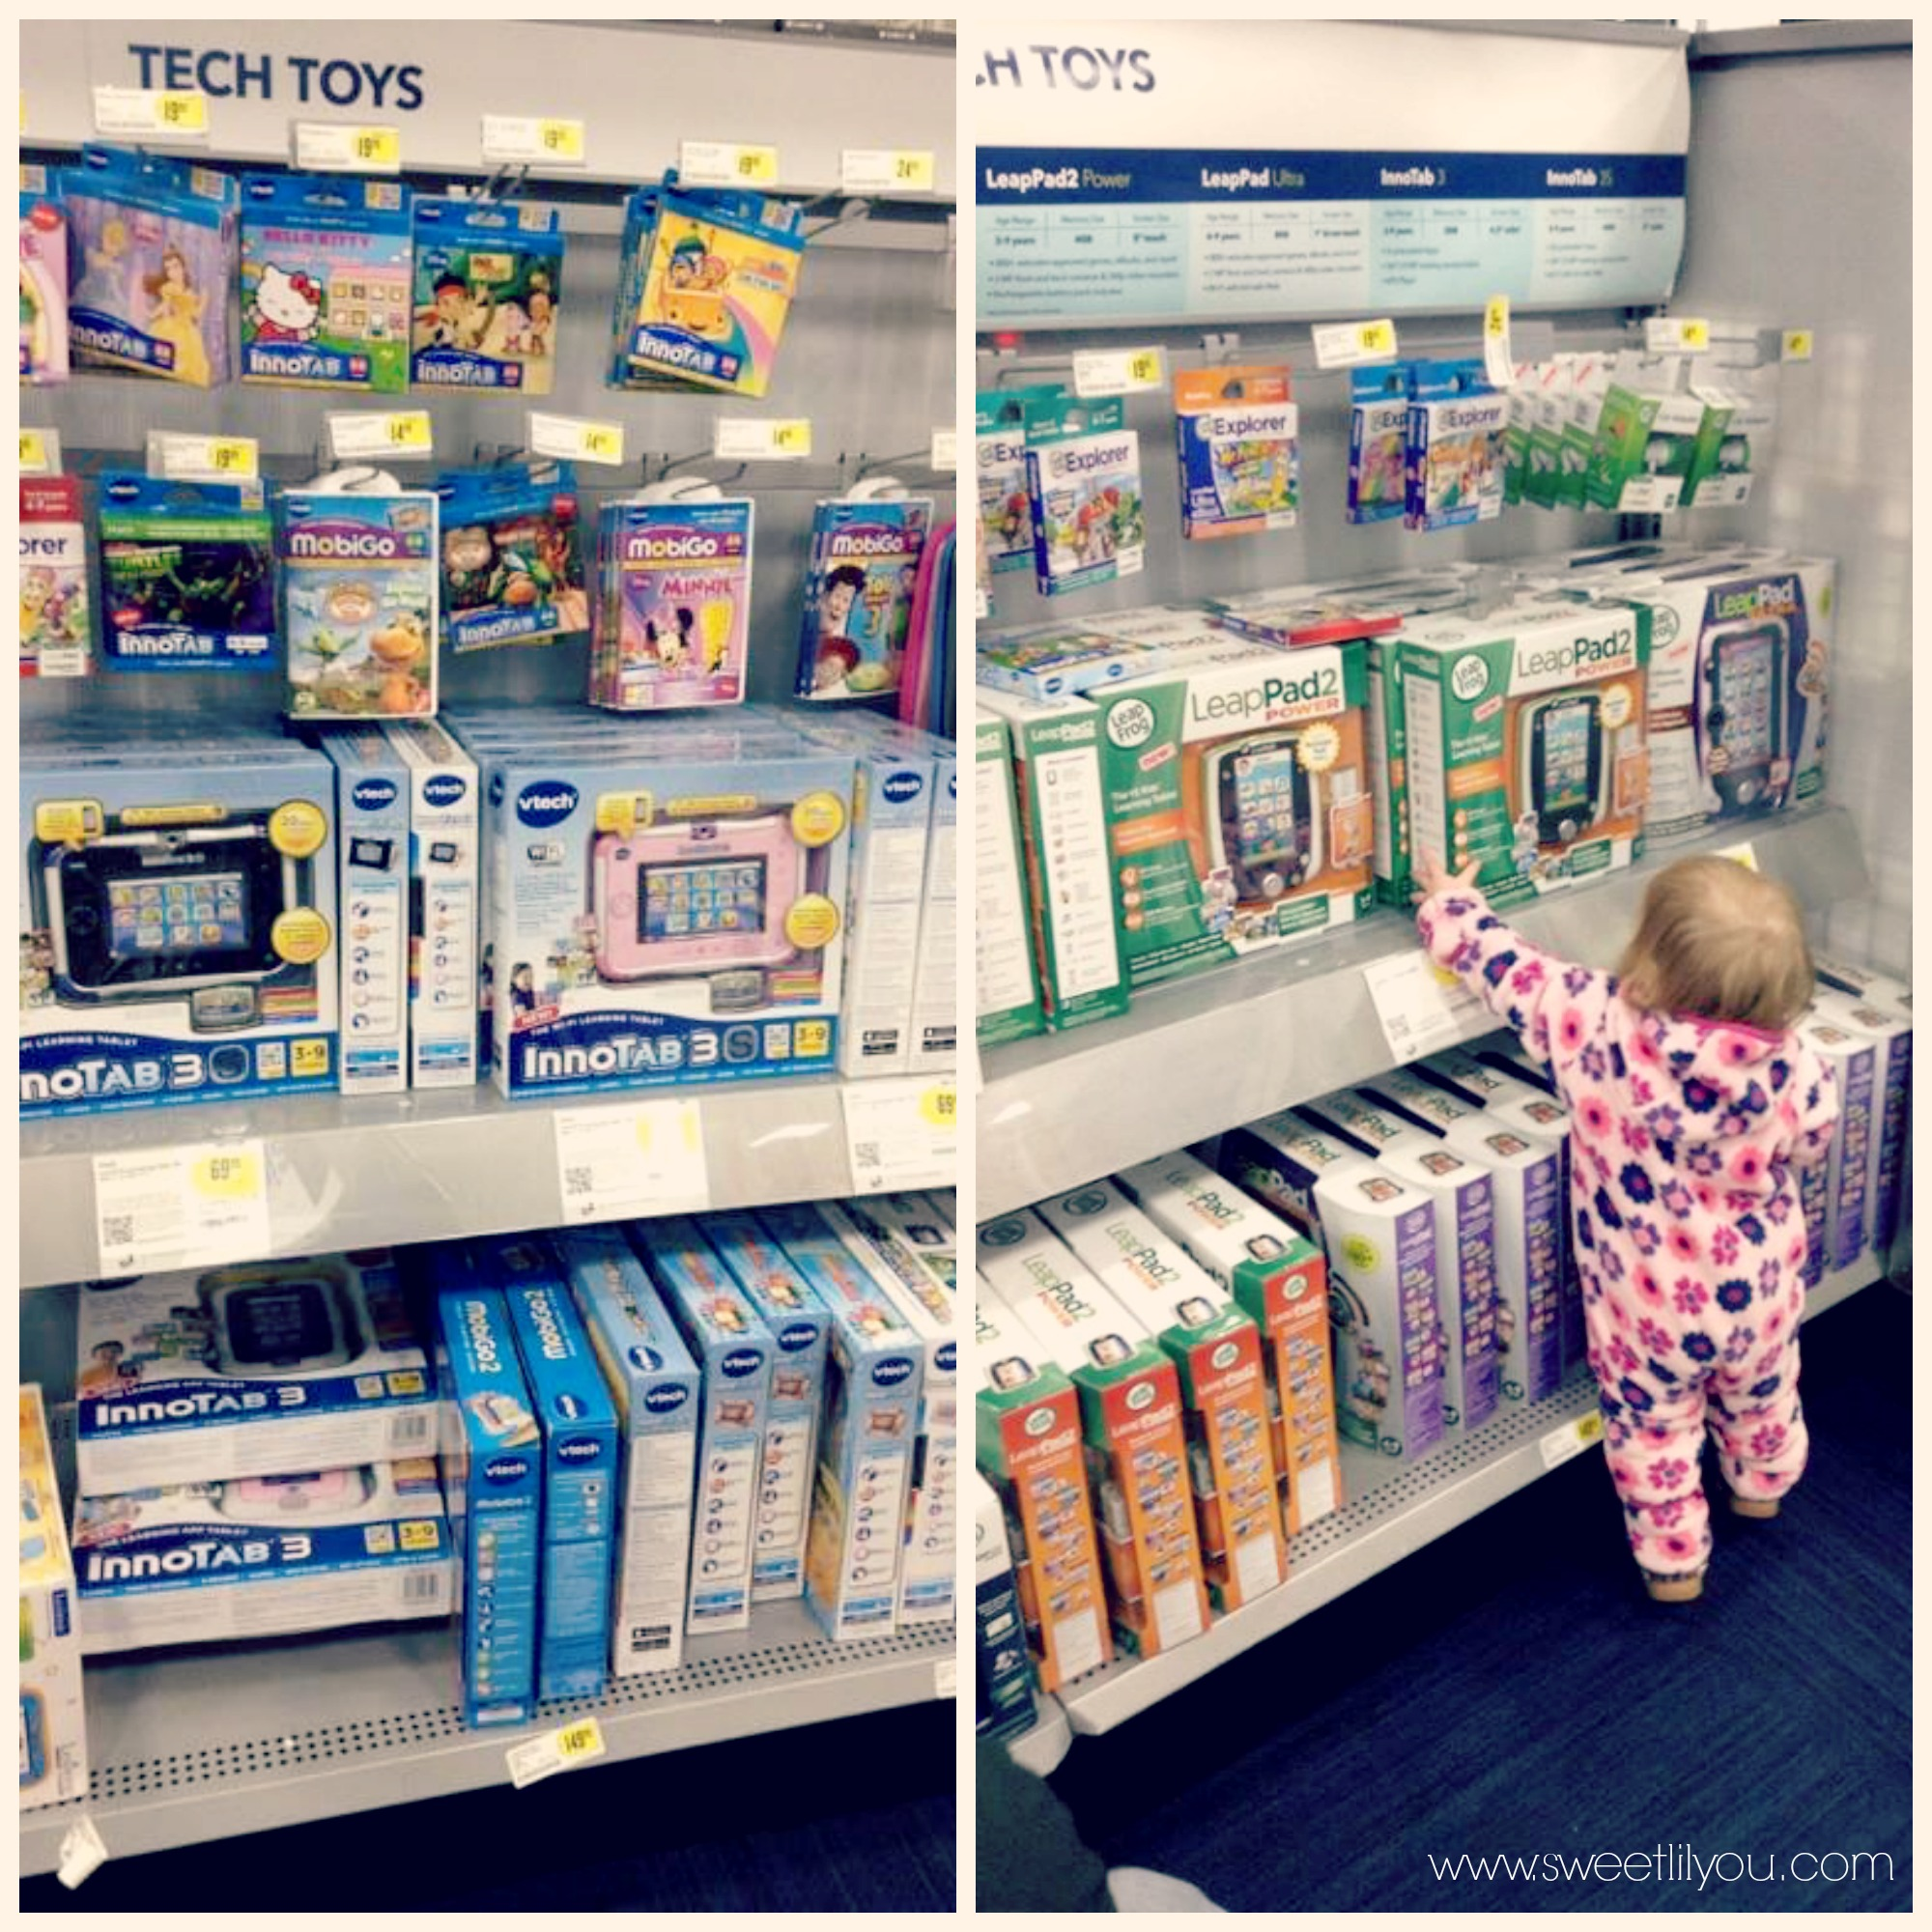 Cool Tech Toys : Cool tech gifts for kids onebuyforall sweet lil you